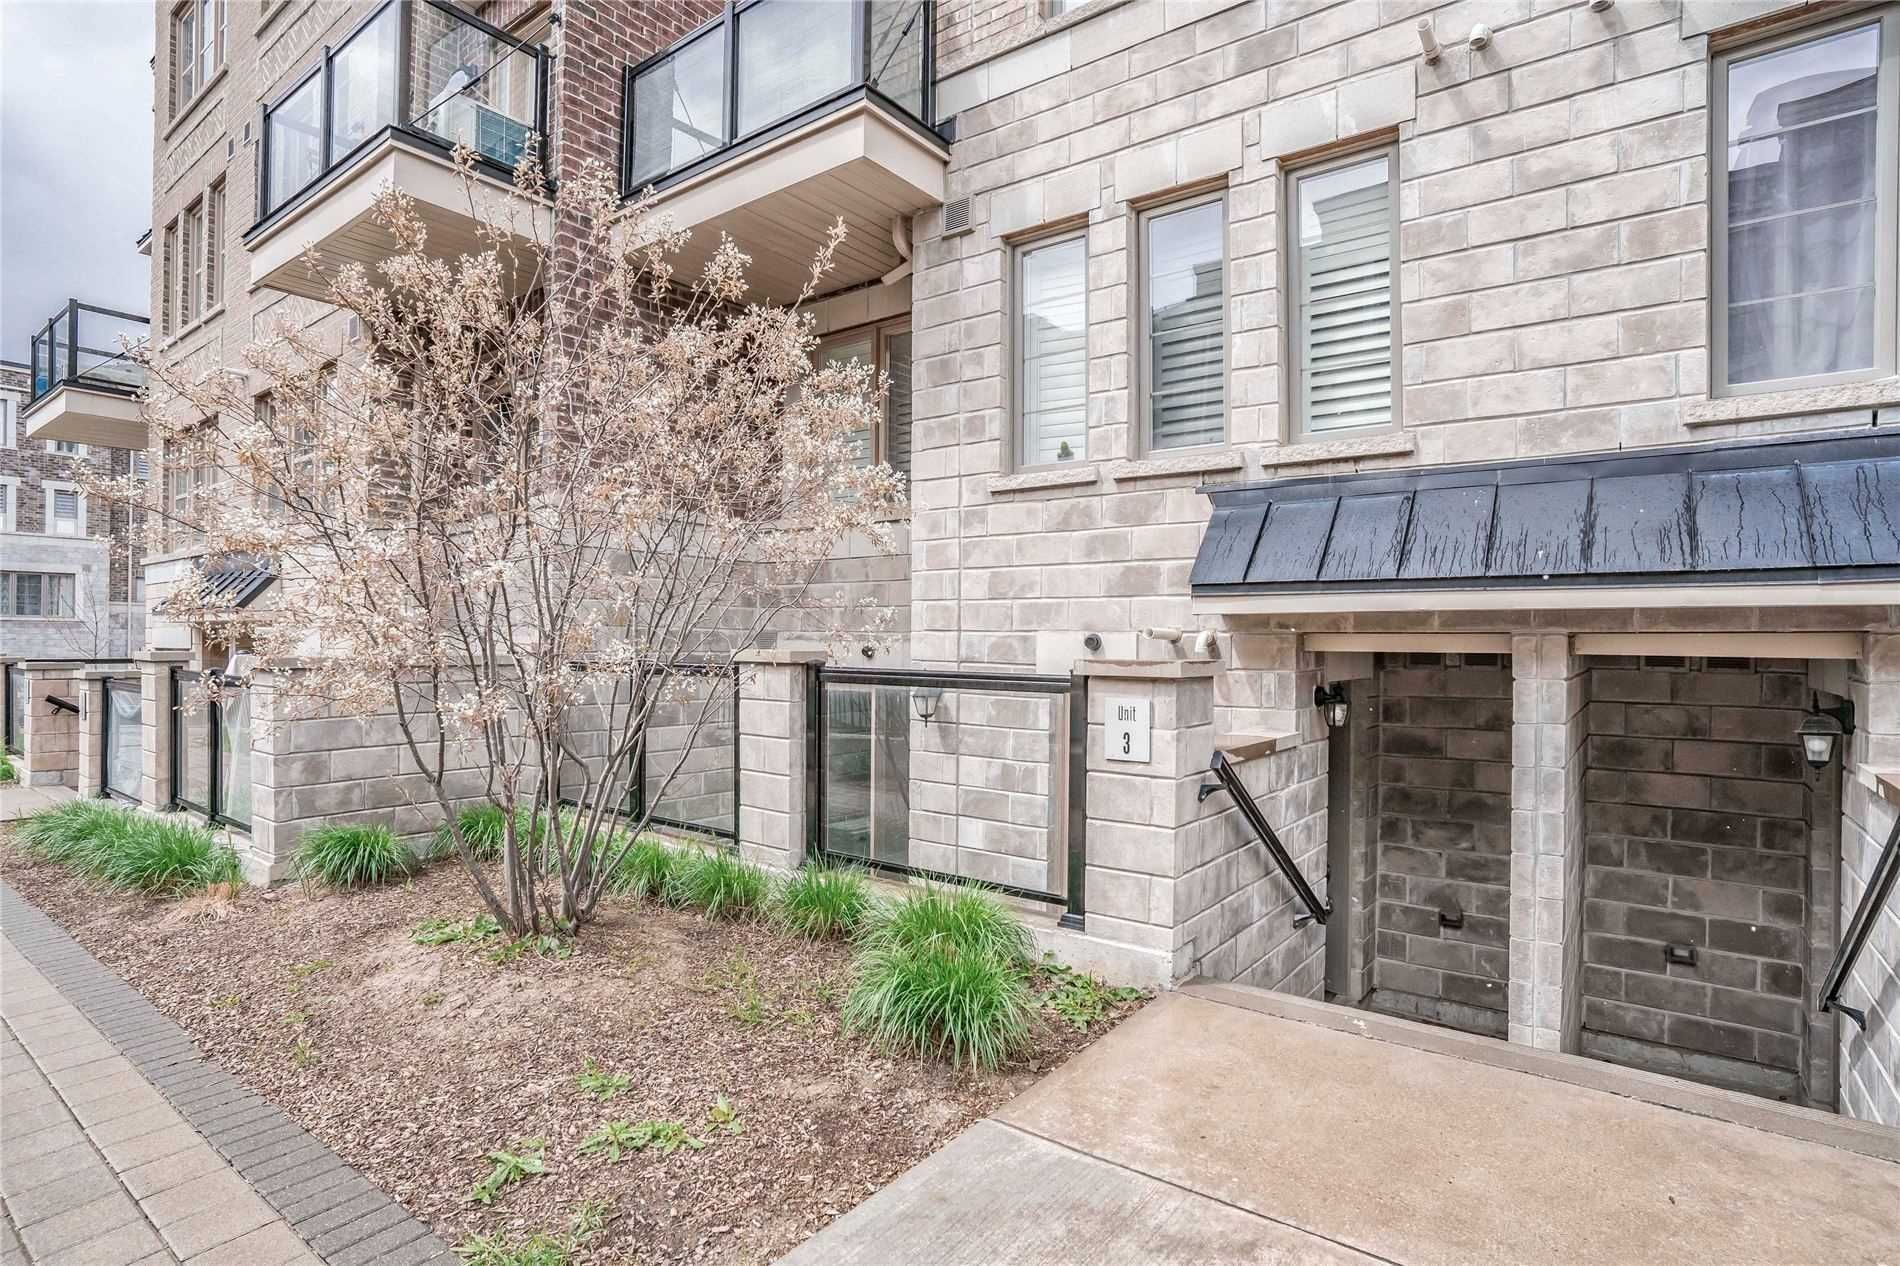 2335 Sheppard Ave W, unit 3 for rent in Toronto - image #2